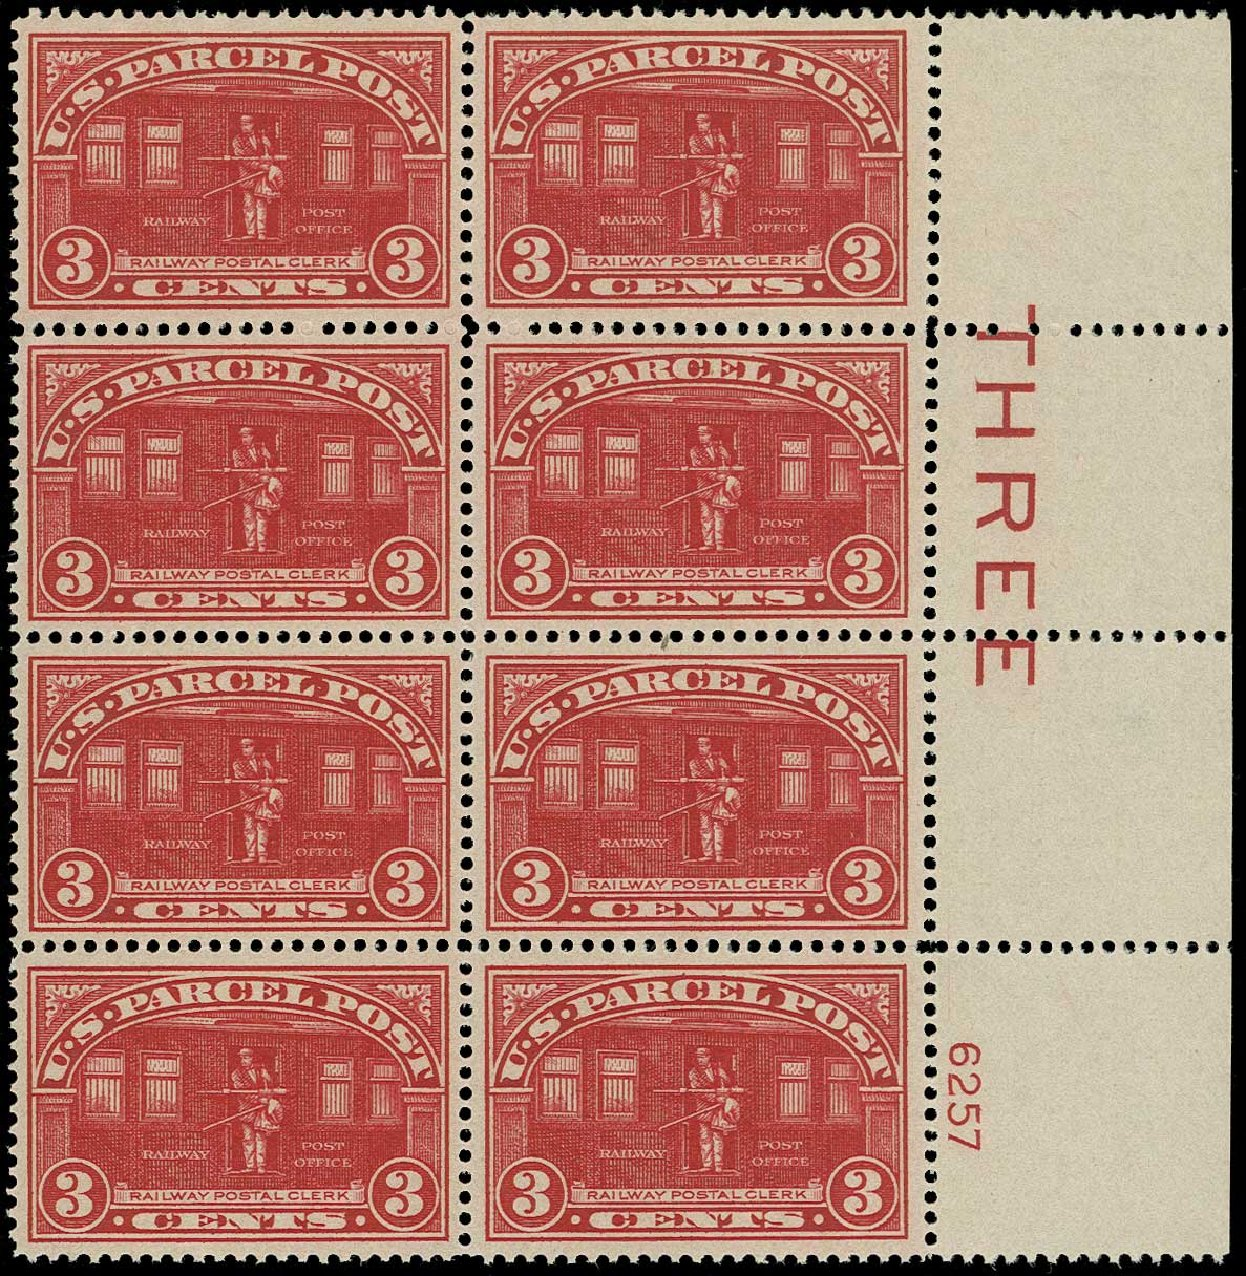 US Stamp Price Scott Catalogue #Q3 - 3c 1913 Parcel Post. H.R. Harmer, Jun 2015, Sale 3007, Lot 3502